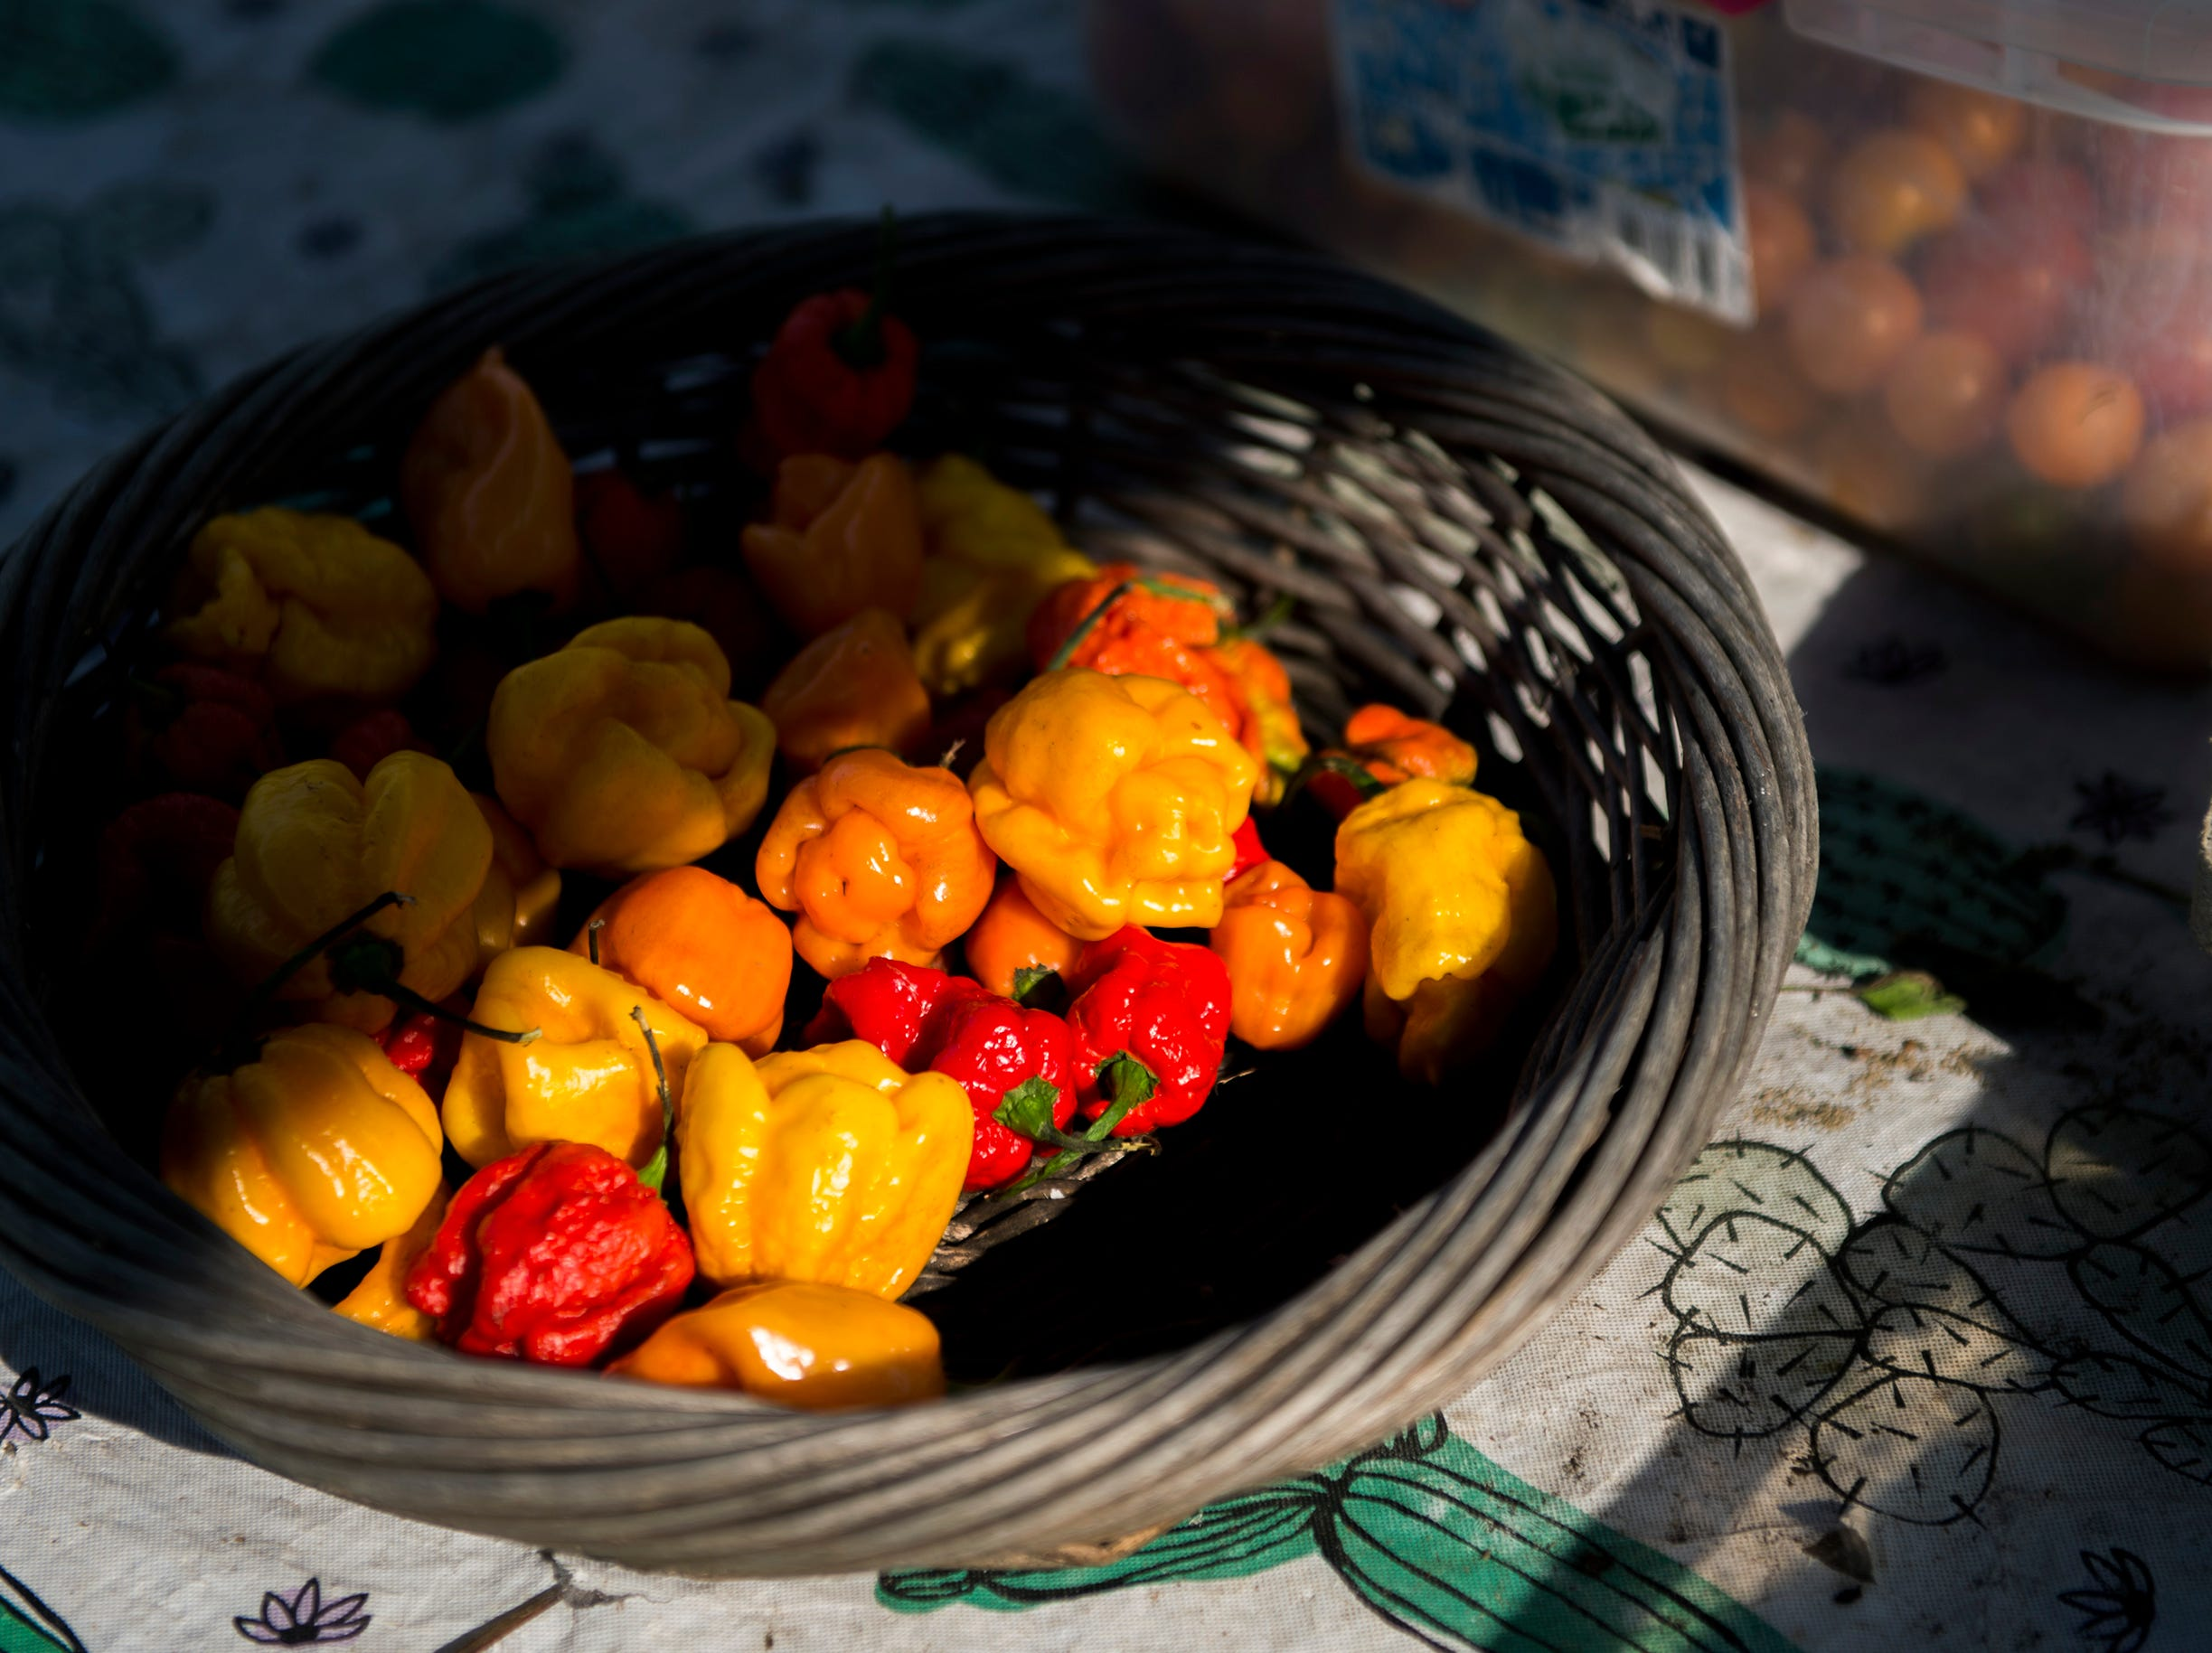 A basket of hot peppers at Free Haven Farms Thursday, Aug. 23, 2018 in Lawnside, N.J.